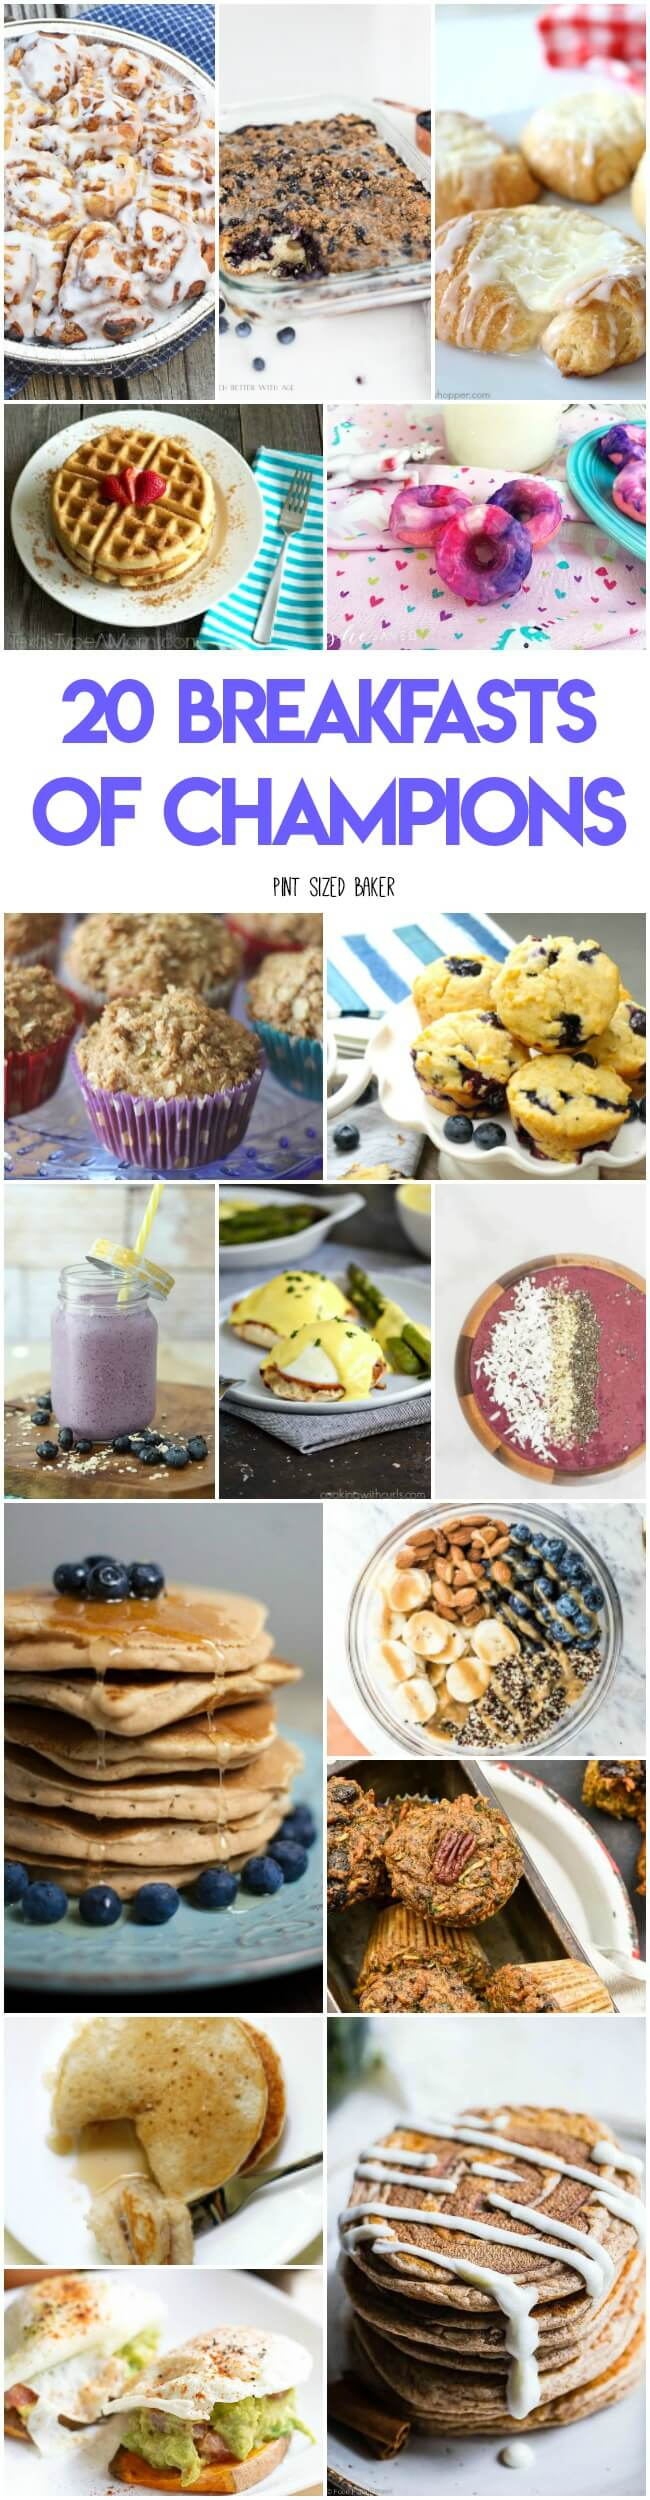 Here's 20 Breakfasts of Champions the whole family will enjoy. Fun weekend ideas, healthy options to get the kids started right, and triditional options.